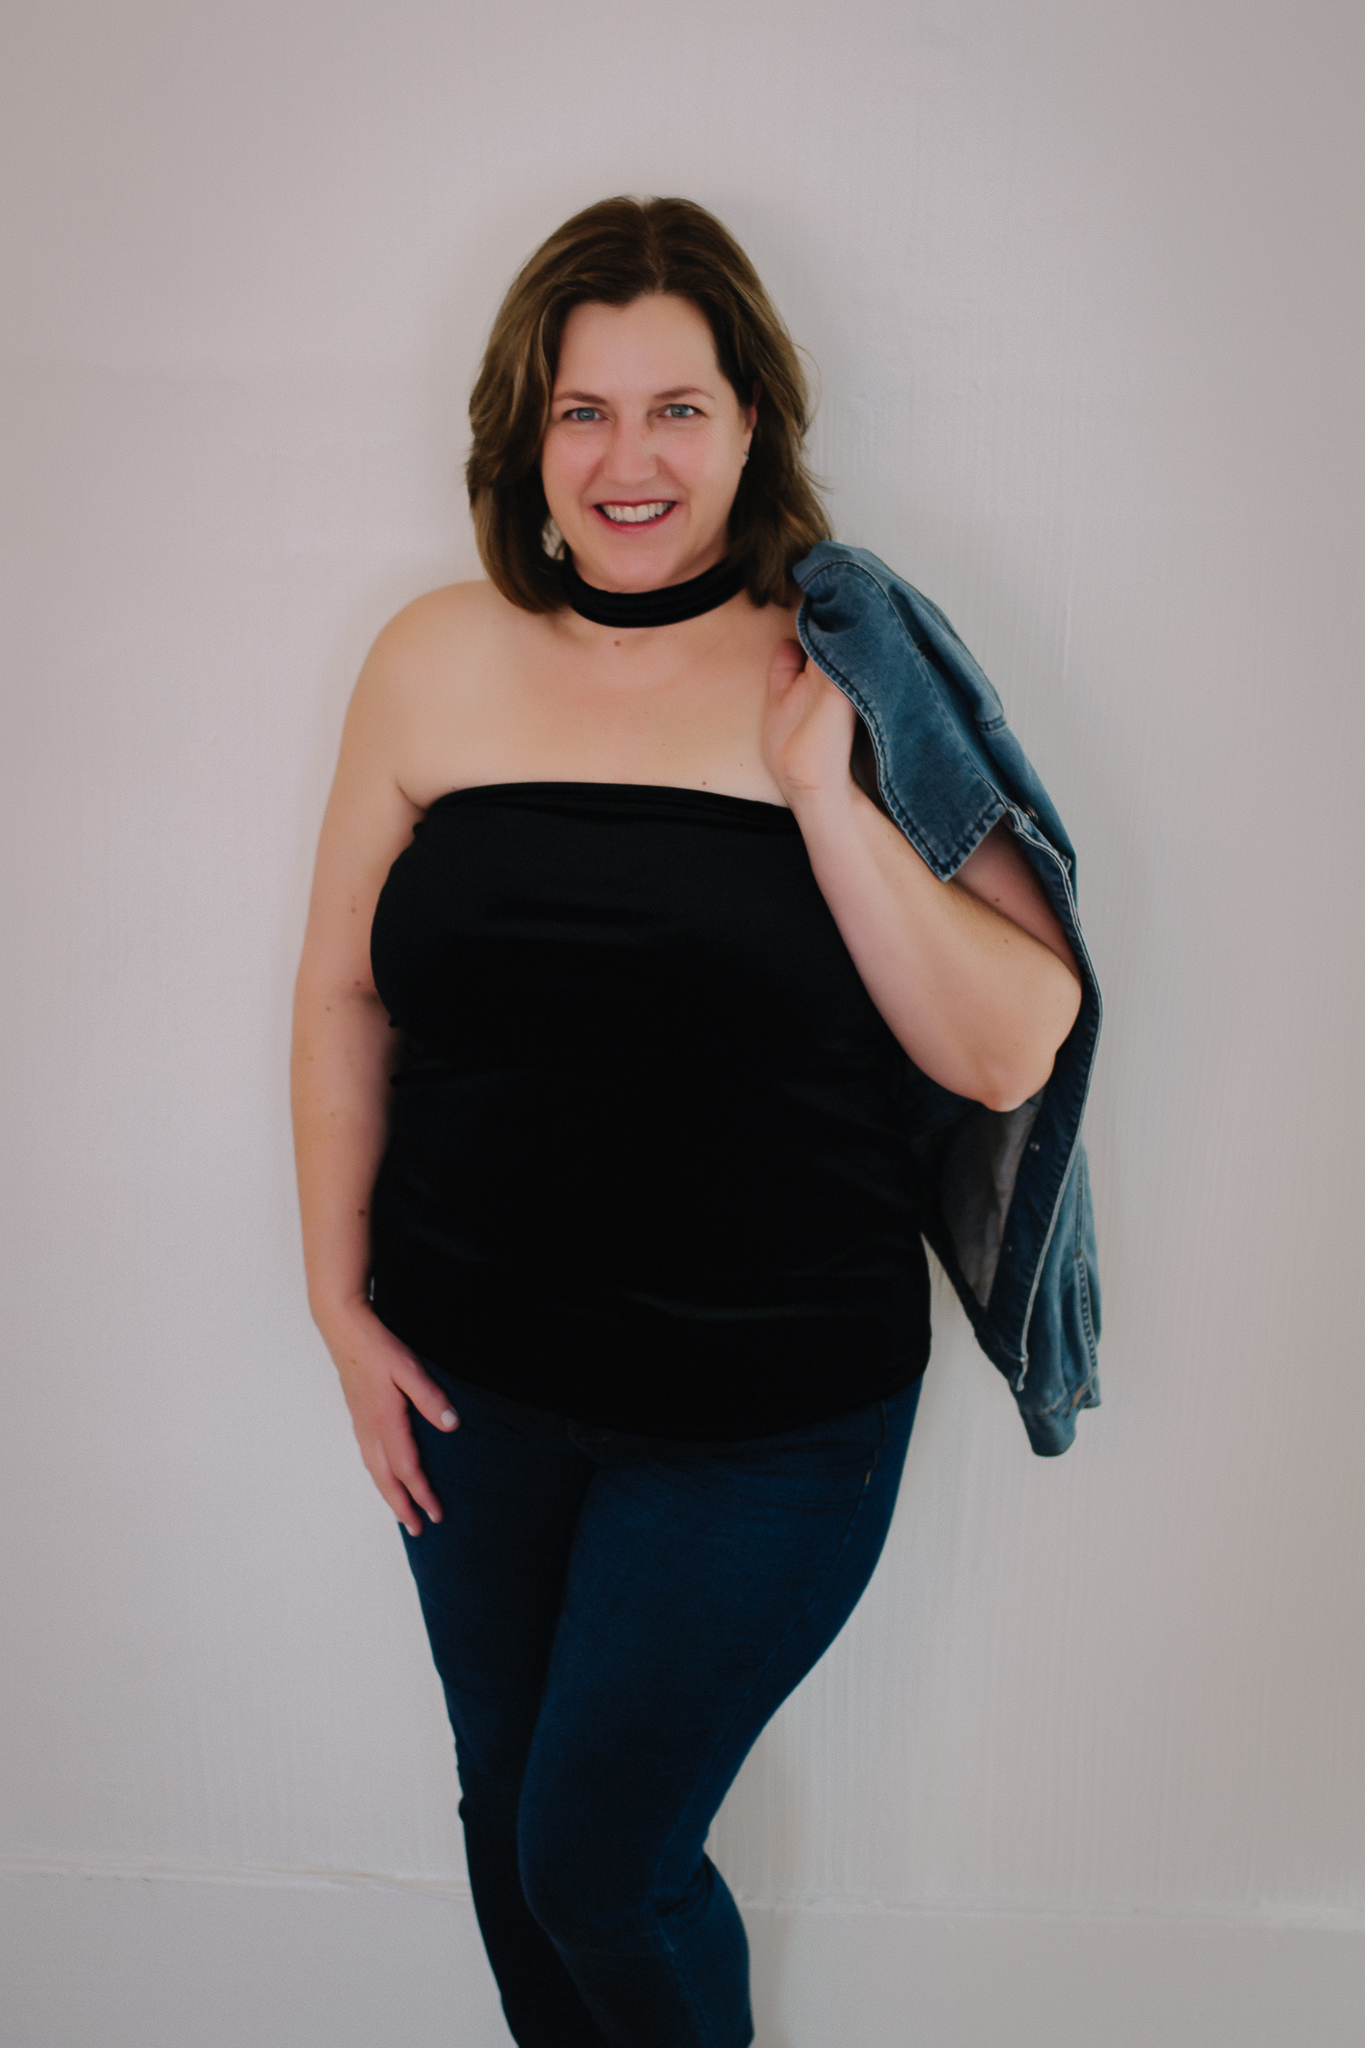 I am trying to spread the word about self acceptance as we age and our bodies change. Even though I was much older than everyone else i felt comfortable being there with the knowledge that we are all trying to achieve self love throughout our lives. We always have to remind ourselves how freaking fabulous we are, every step of the way.